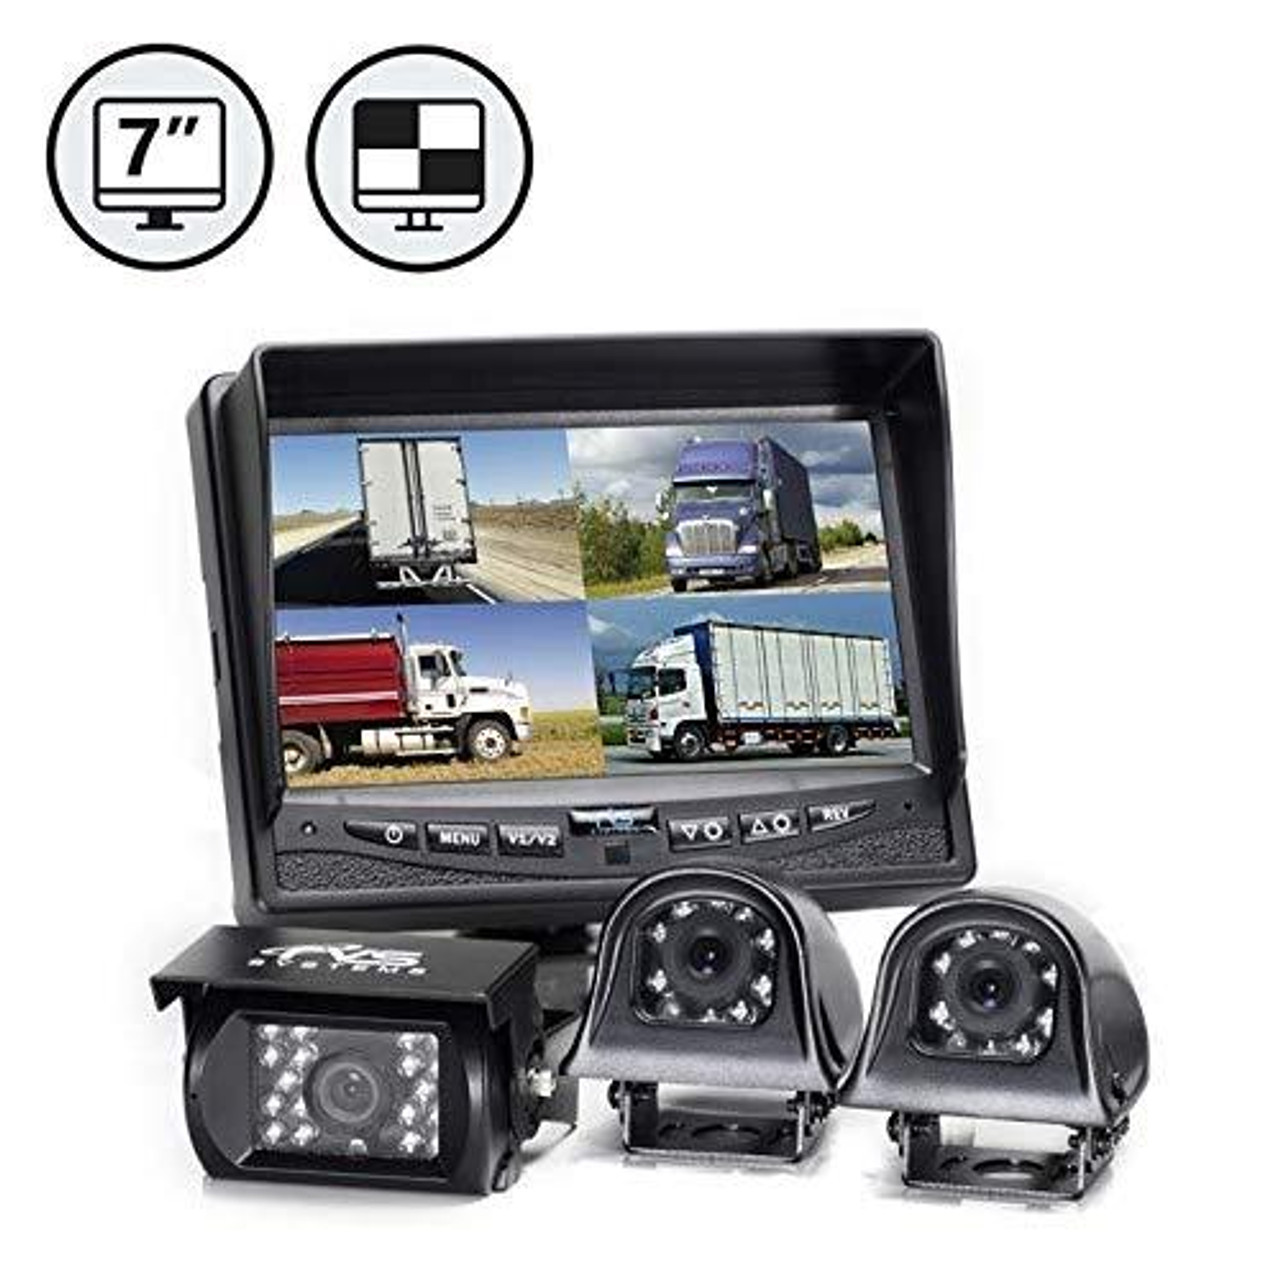 "7"" QV Display, 1 x Backup Camera, Both Side Cameras, 1 x 33' Cable, 2 x 16' Cables"